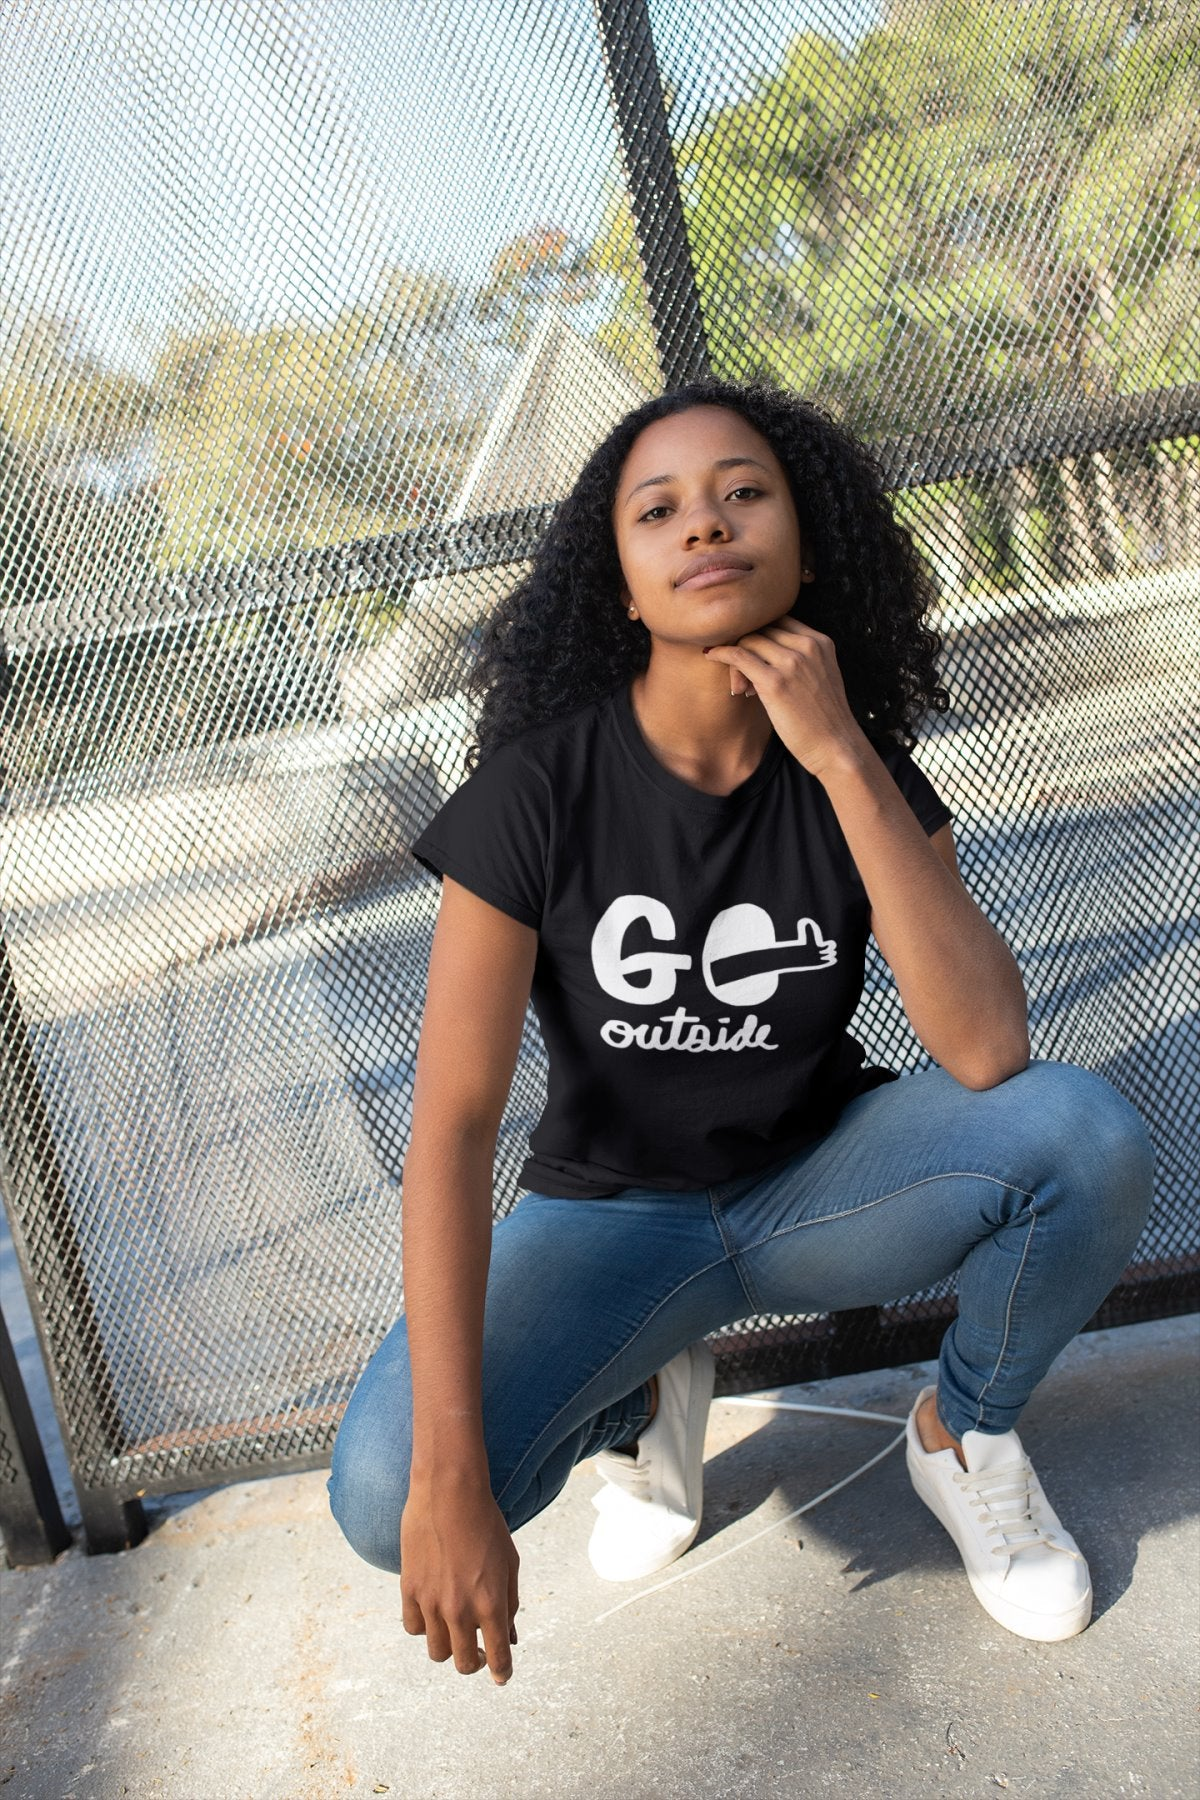 Go Outside - Unisex Shirt